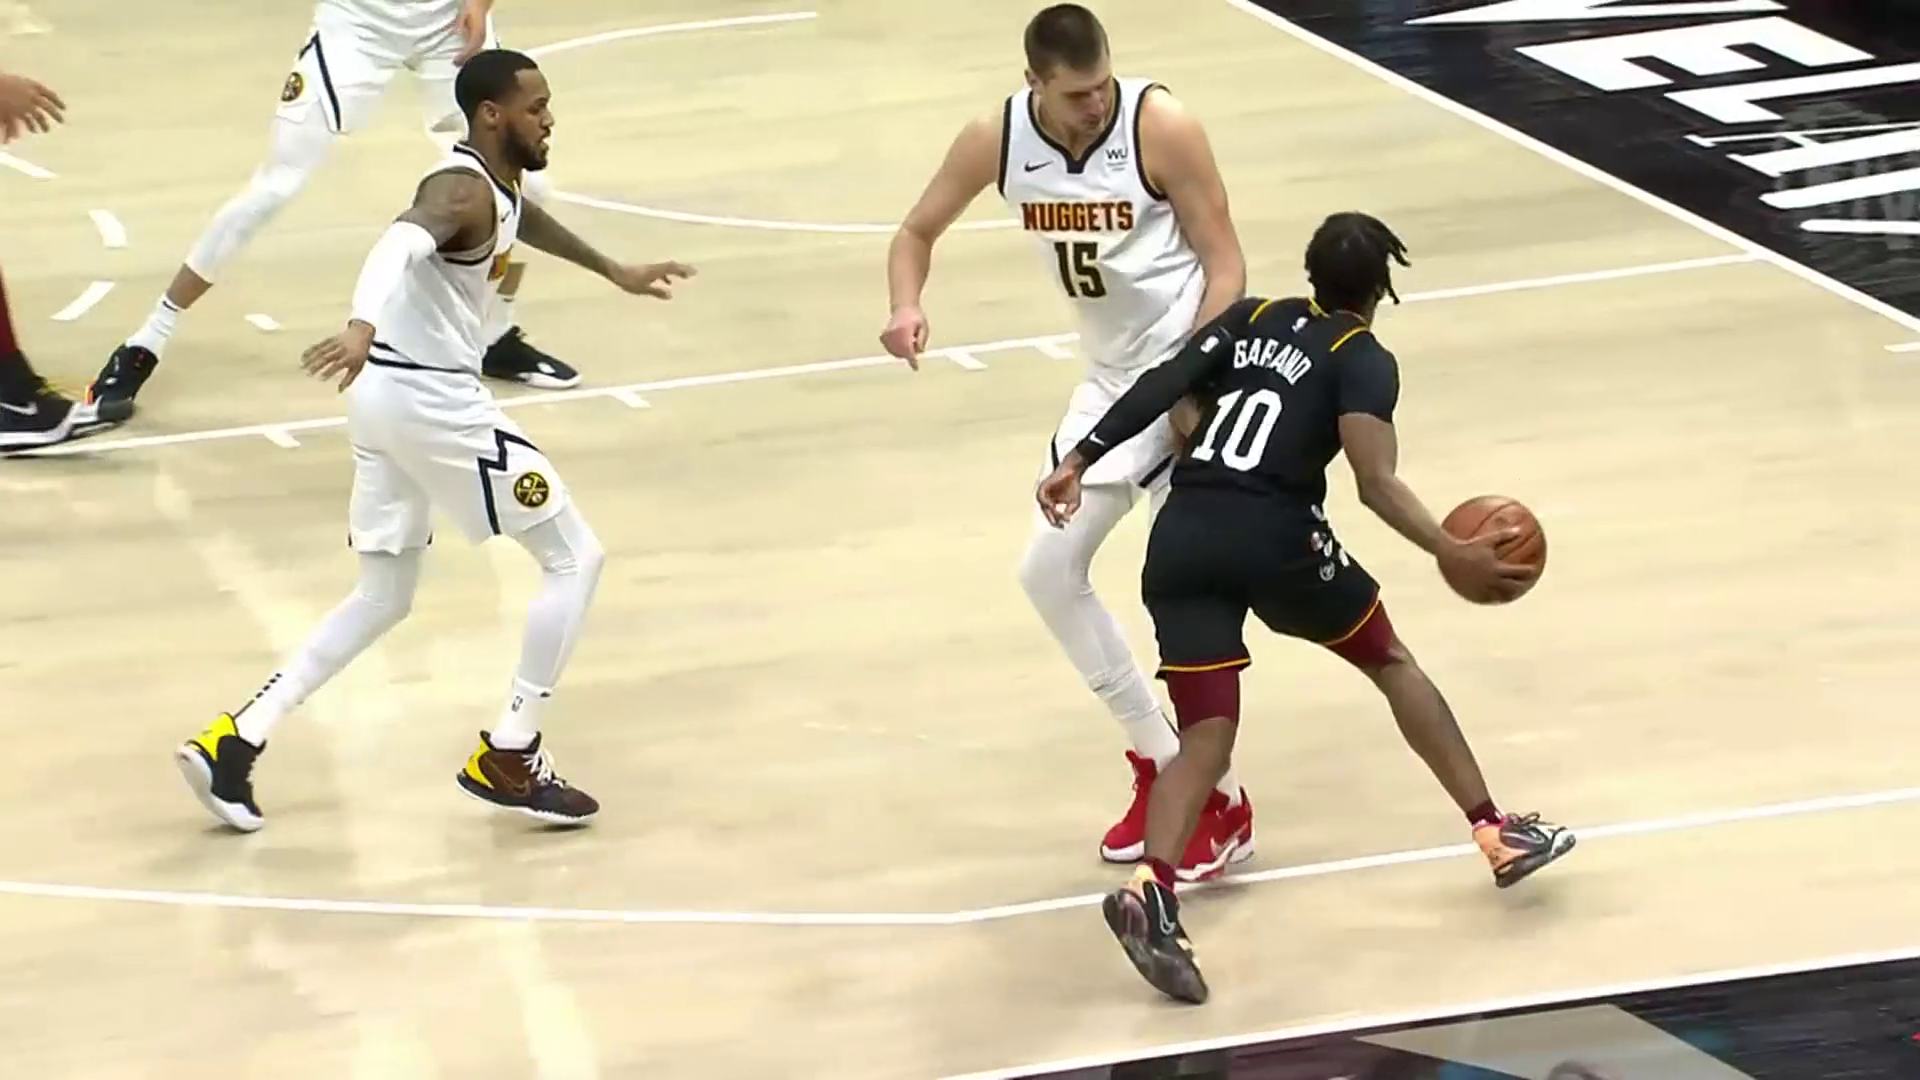 Garland Fires Pass Inside to Okoro